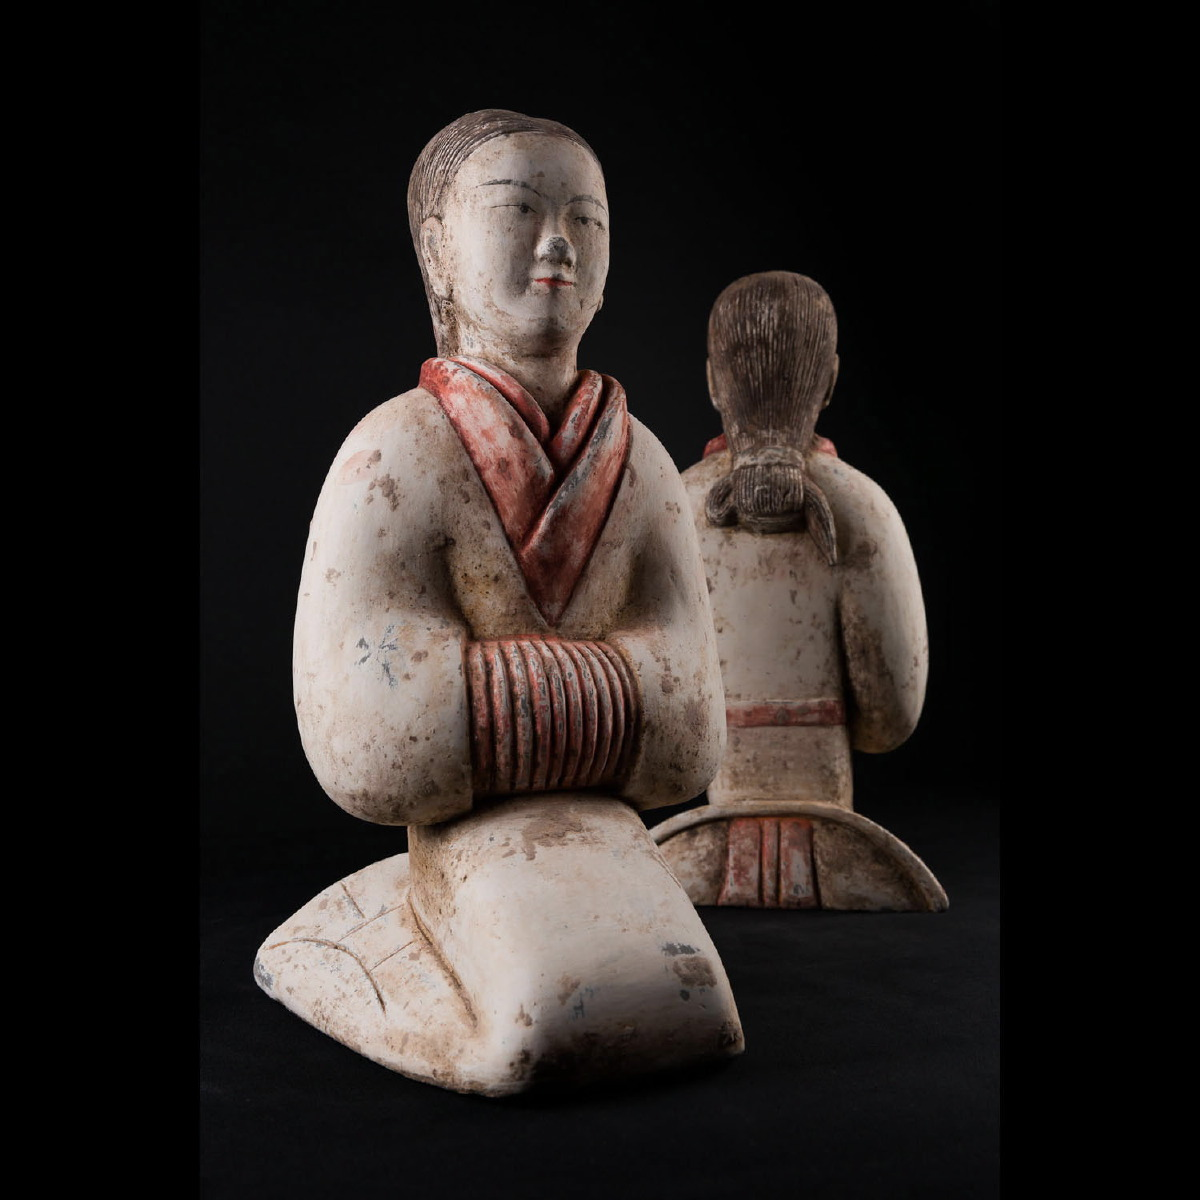 Photo of han-dancers-white-dress-terracottas-tl-test-galerie-golconda-museum-quality-certificate